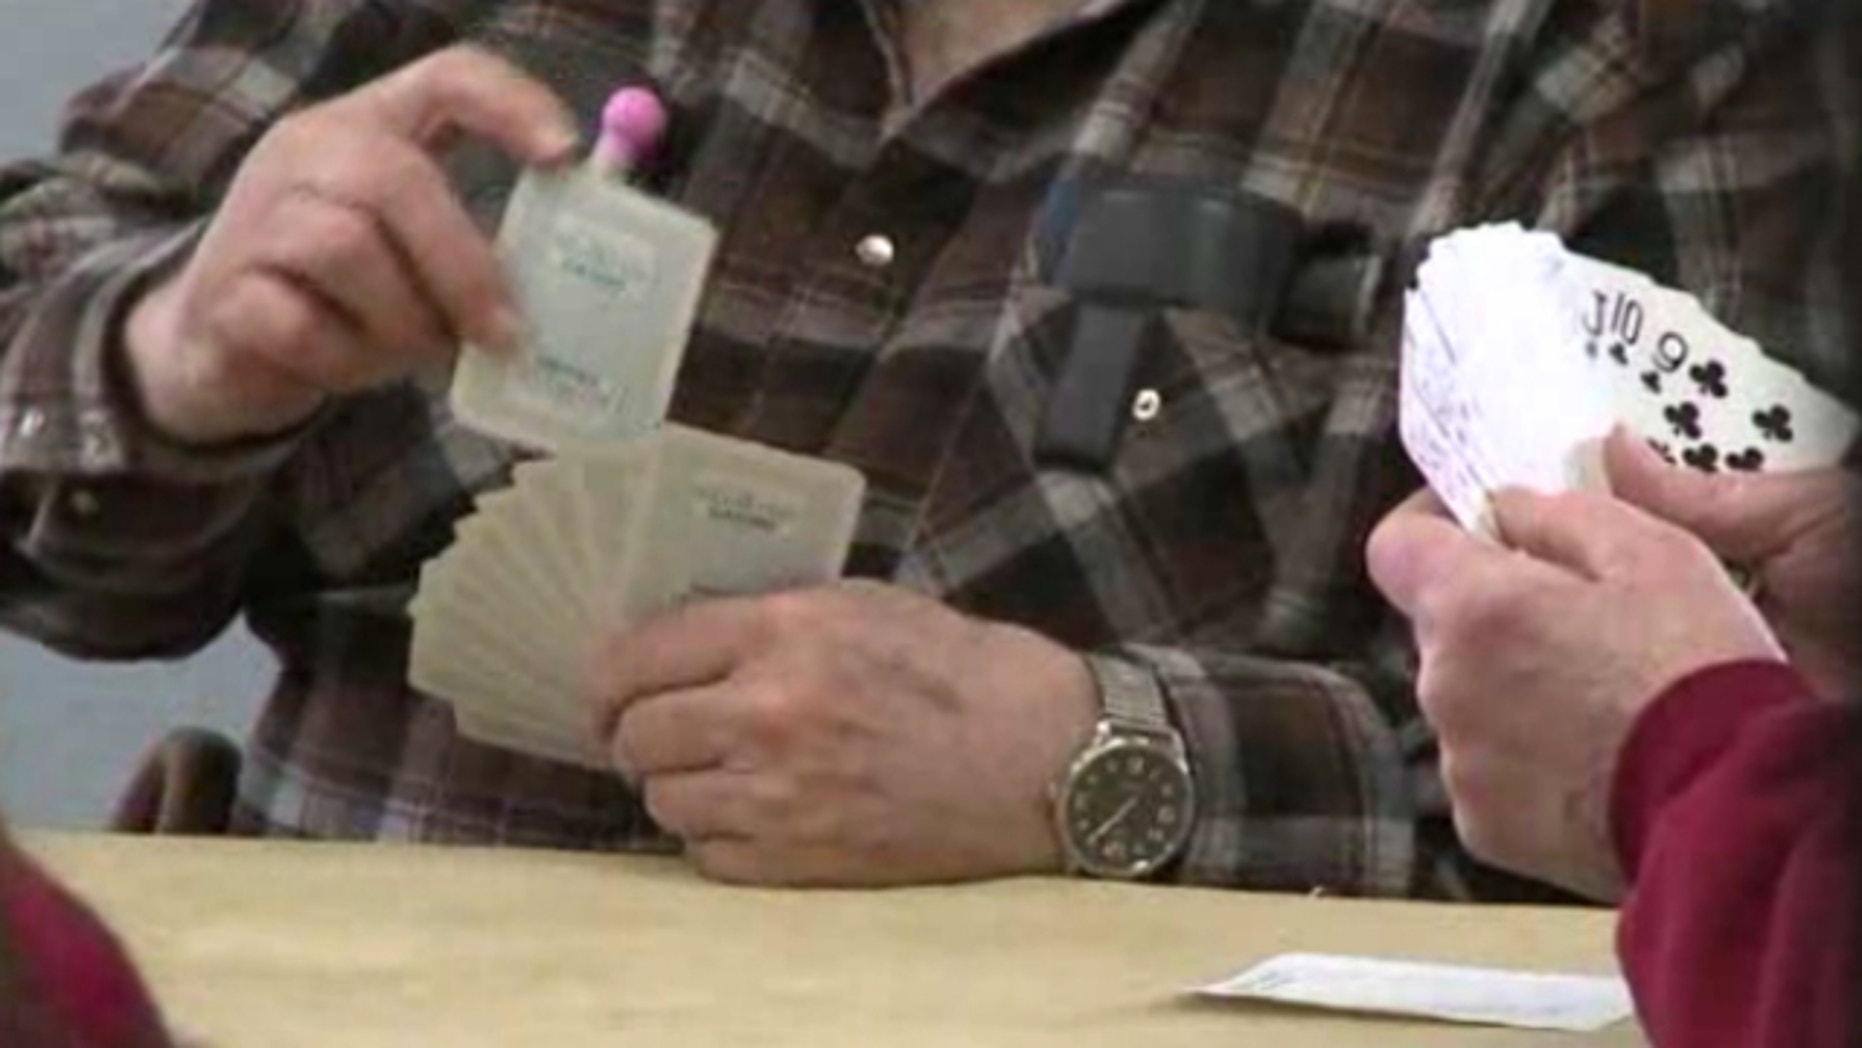 UNDATED: A group of seniors who play poker with dimes and nickels at the Snohomish Senior Center were recently given a cease-and-desist warning from the state Washington State Gambling Commission.